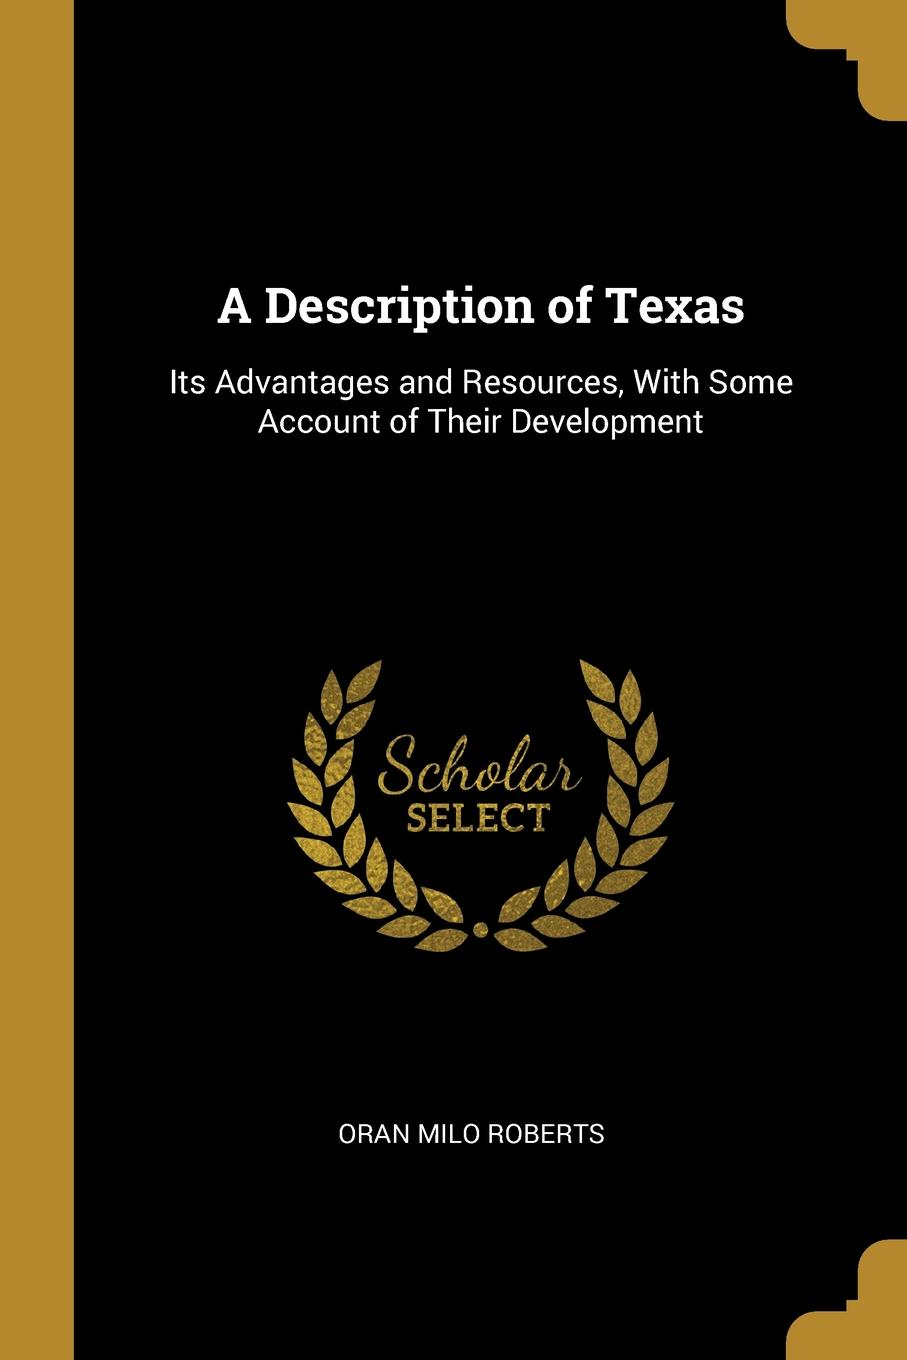 A Description of Texas. Its Advantages and Resources, With Some Account of Their Development